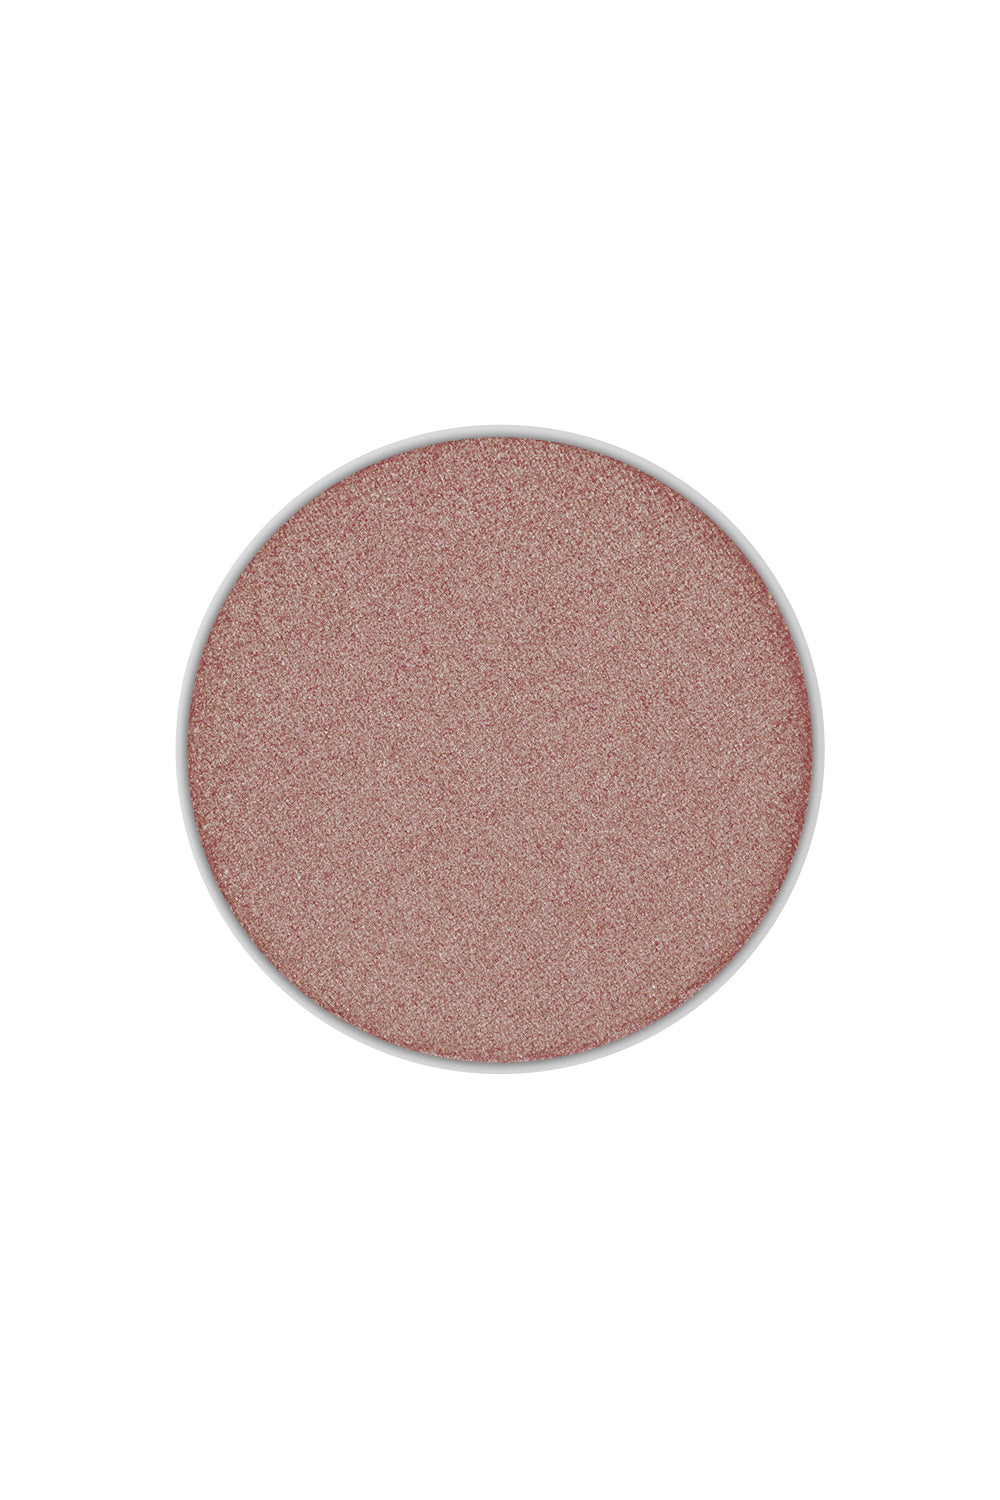 Type 2 Eyeshadow Pan - Mauve Quartz